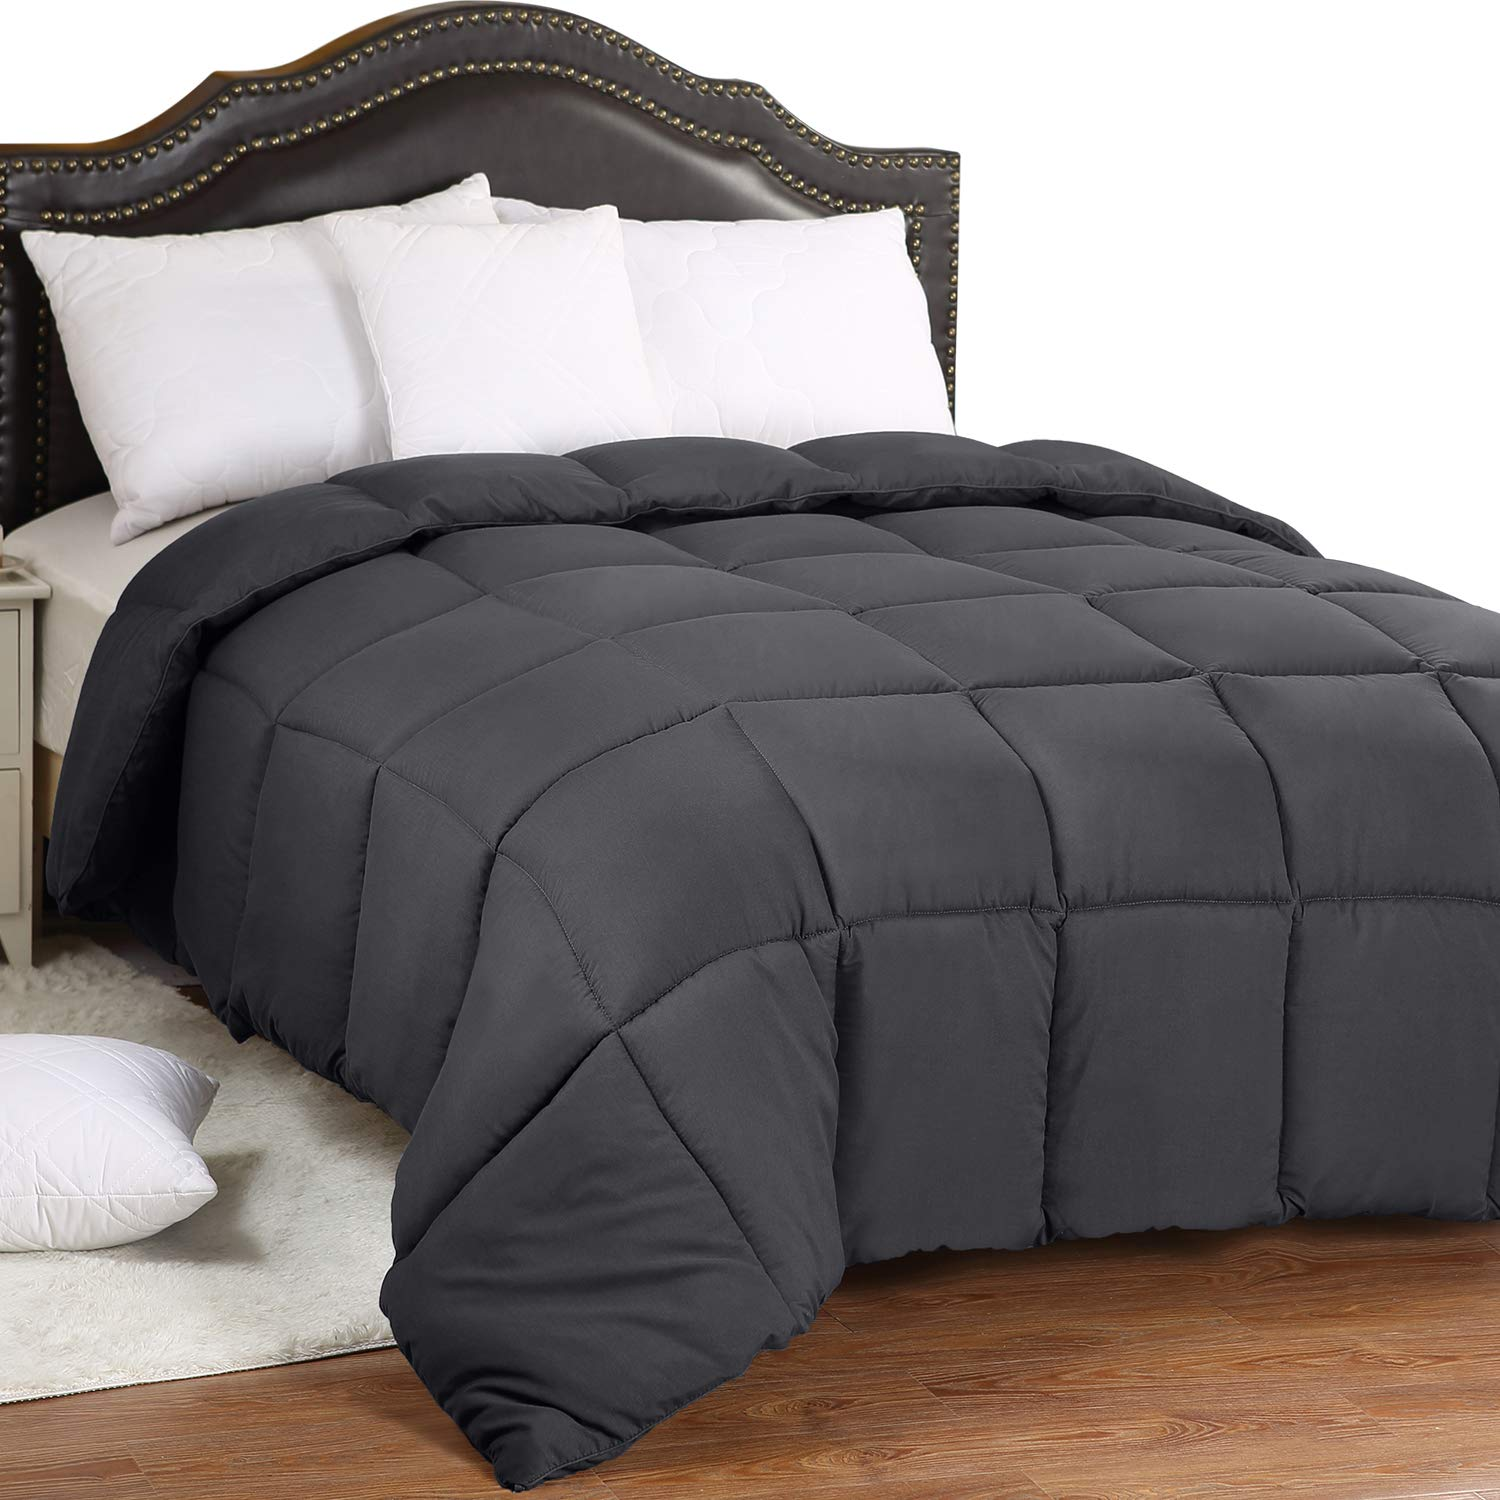 Utopia Bedding All Season 250 GSM Comforter - Soft Down Alternative Comforter - Plush Siliconized Fiberfill Duvet Insert - Box Stitched (Full/Queen, Gray)